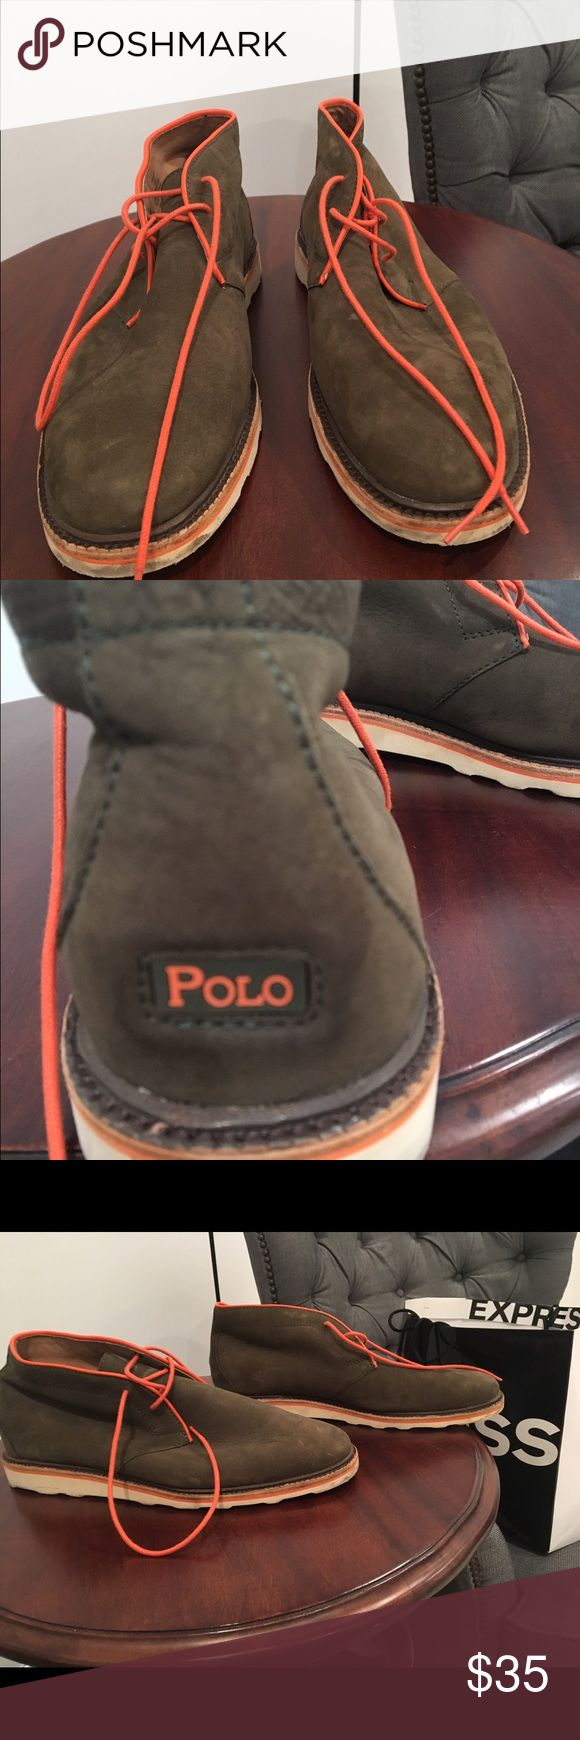 Polo Ralph Lauren Whiston Men's Chukka Ankle Boots Polo Ralph Lauren Whiston Men's Chukka Ankle Boots 2 Eye Shoes Green - size 10 1/2 ( EXCELLENT CONDITION - WORN ONCE) Polo by Ralph Lauren Shoes Chukka Boots